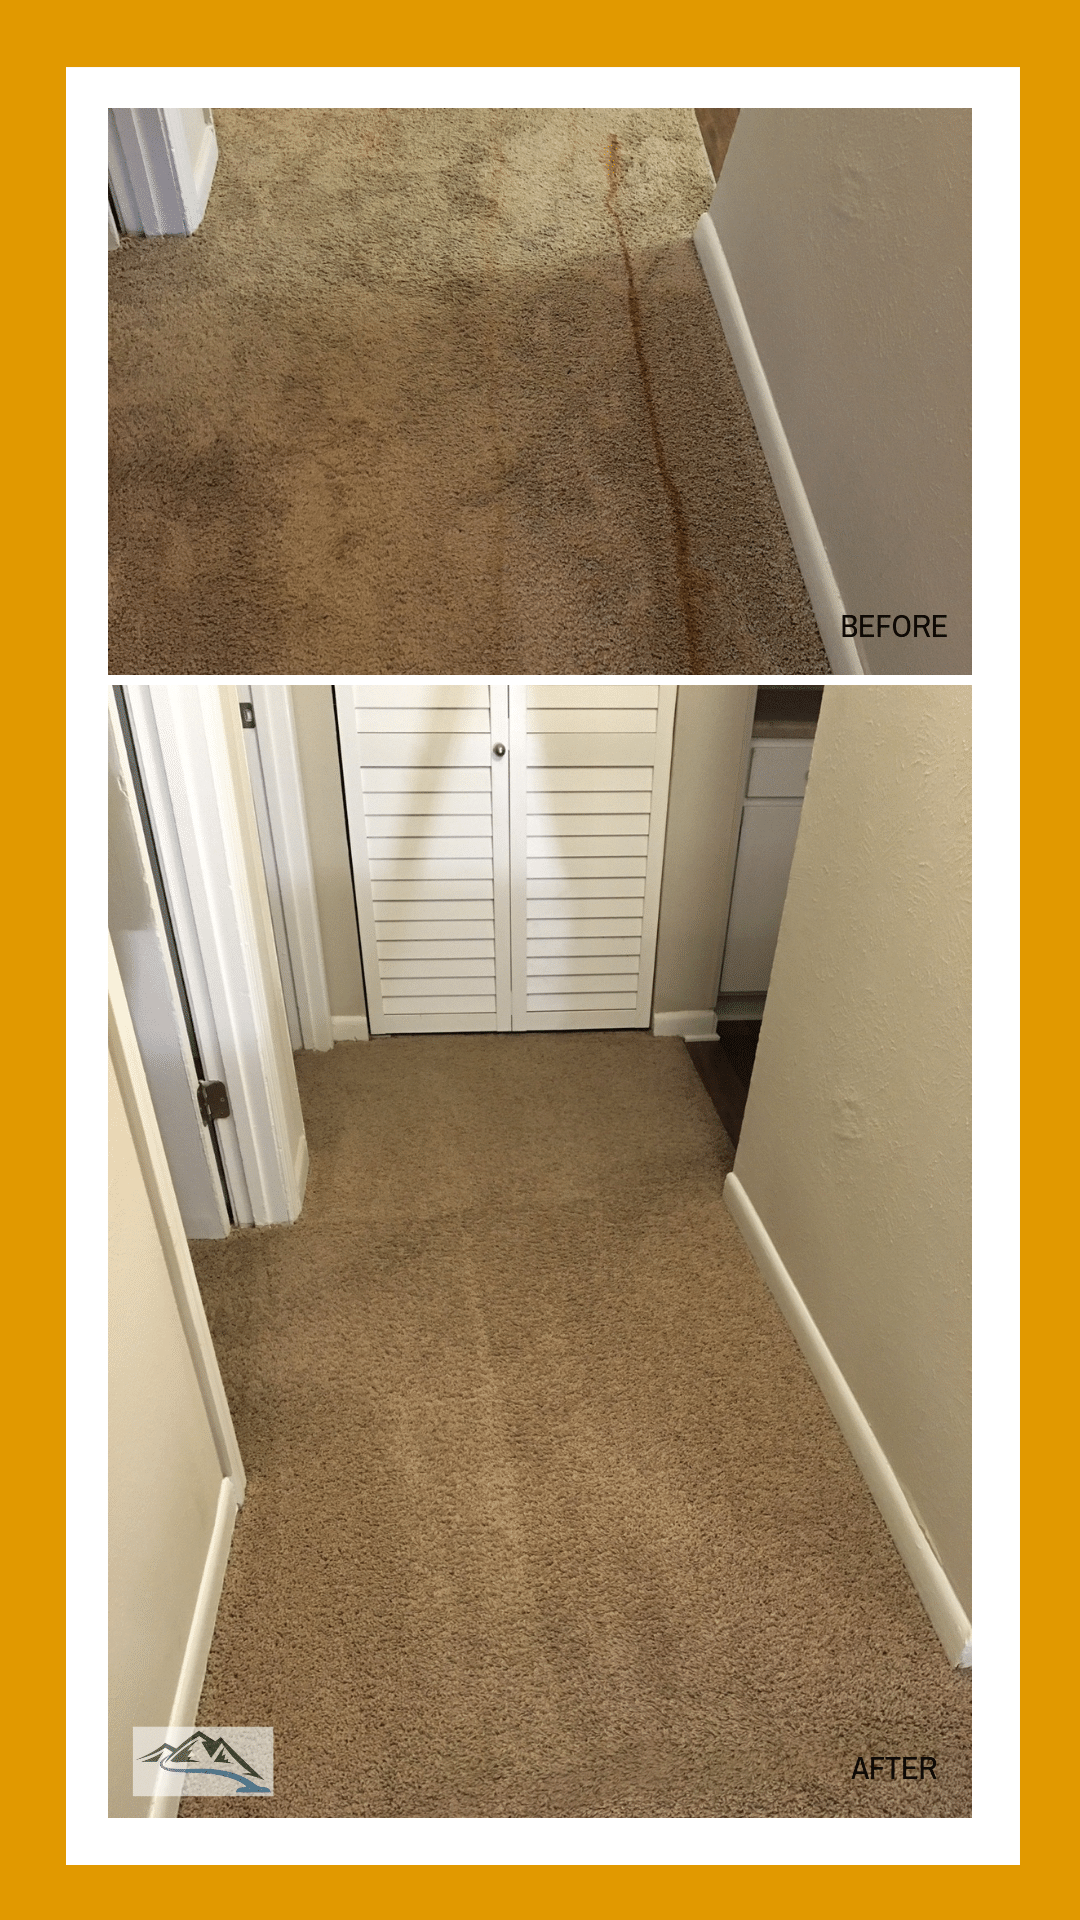 carpet-cleaning-hallway-stain-greenville-sc-1